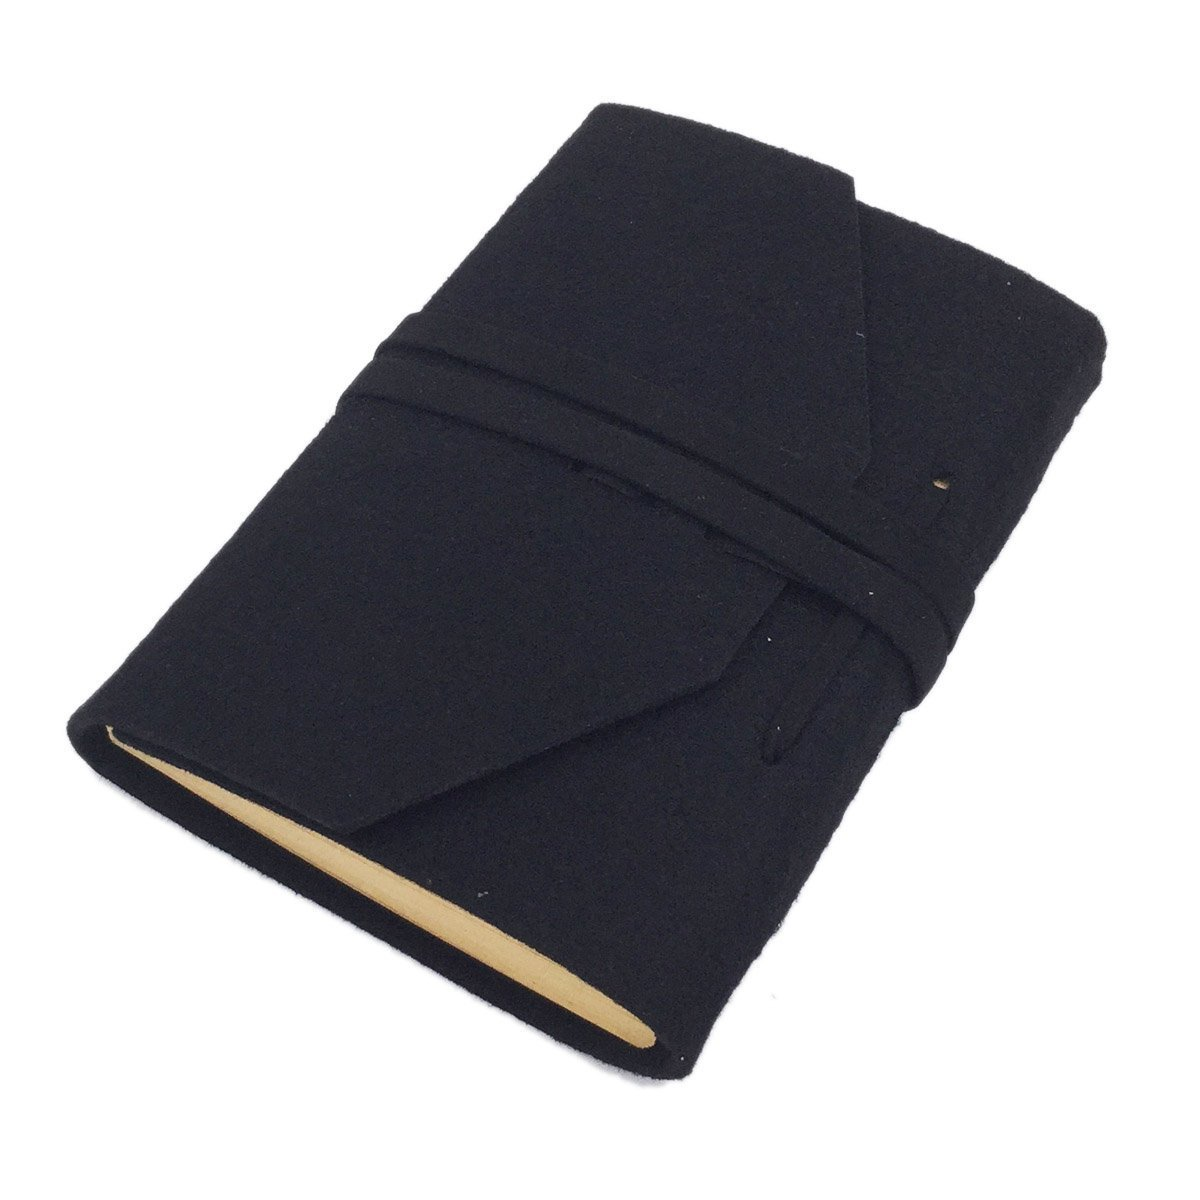 SAYEEC Retro Slim Felt Cover Hardcover Notebooks - Blank Paper Diary Travel Writing Journal Drawing Sketchbook Notebook